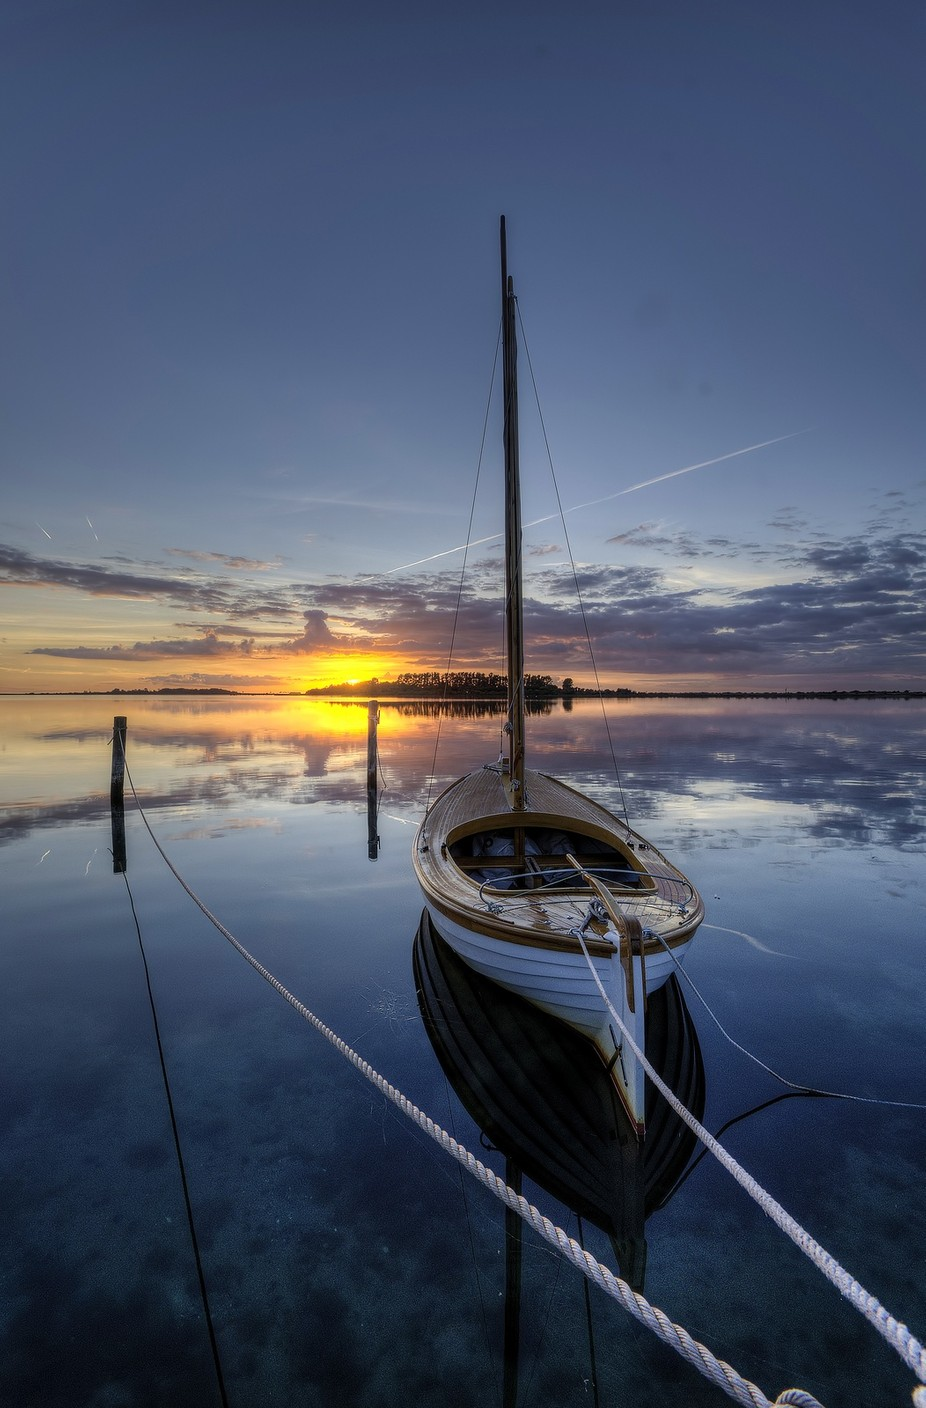 Waiting for a new day by kimschou - Ships And Boats Photo Contest